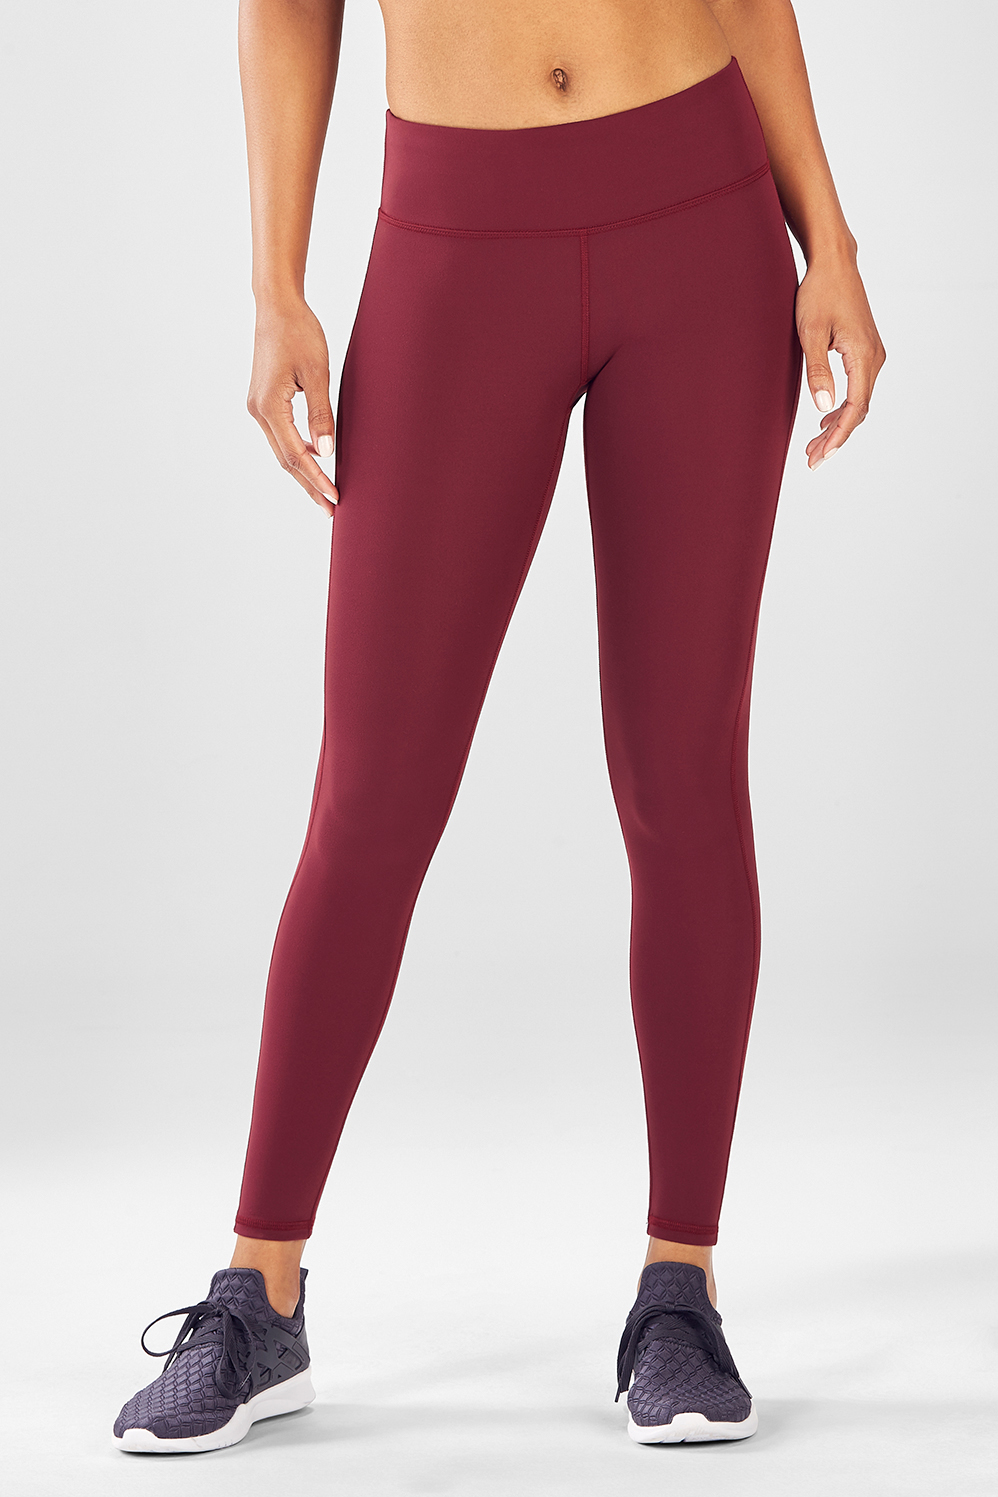 49d4f4ed7d5957 Salar Solid PureLuxe Leggings - Black Cherry